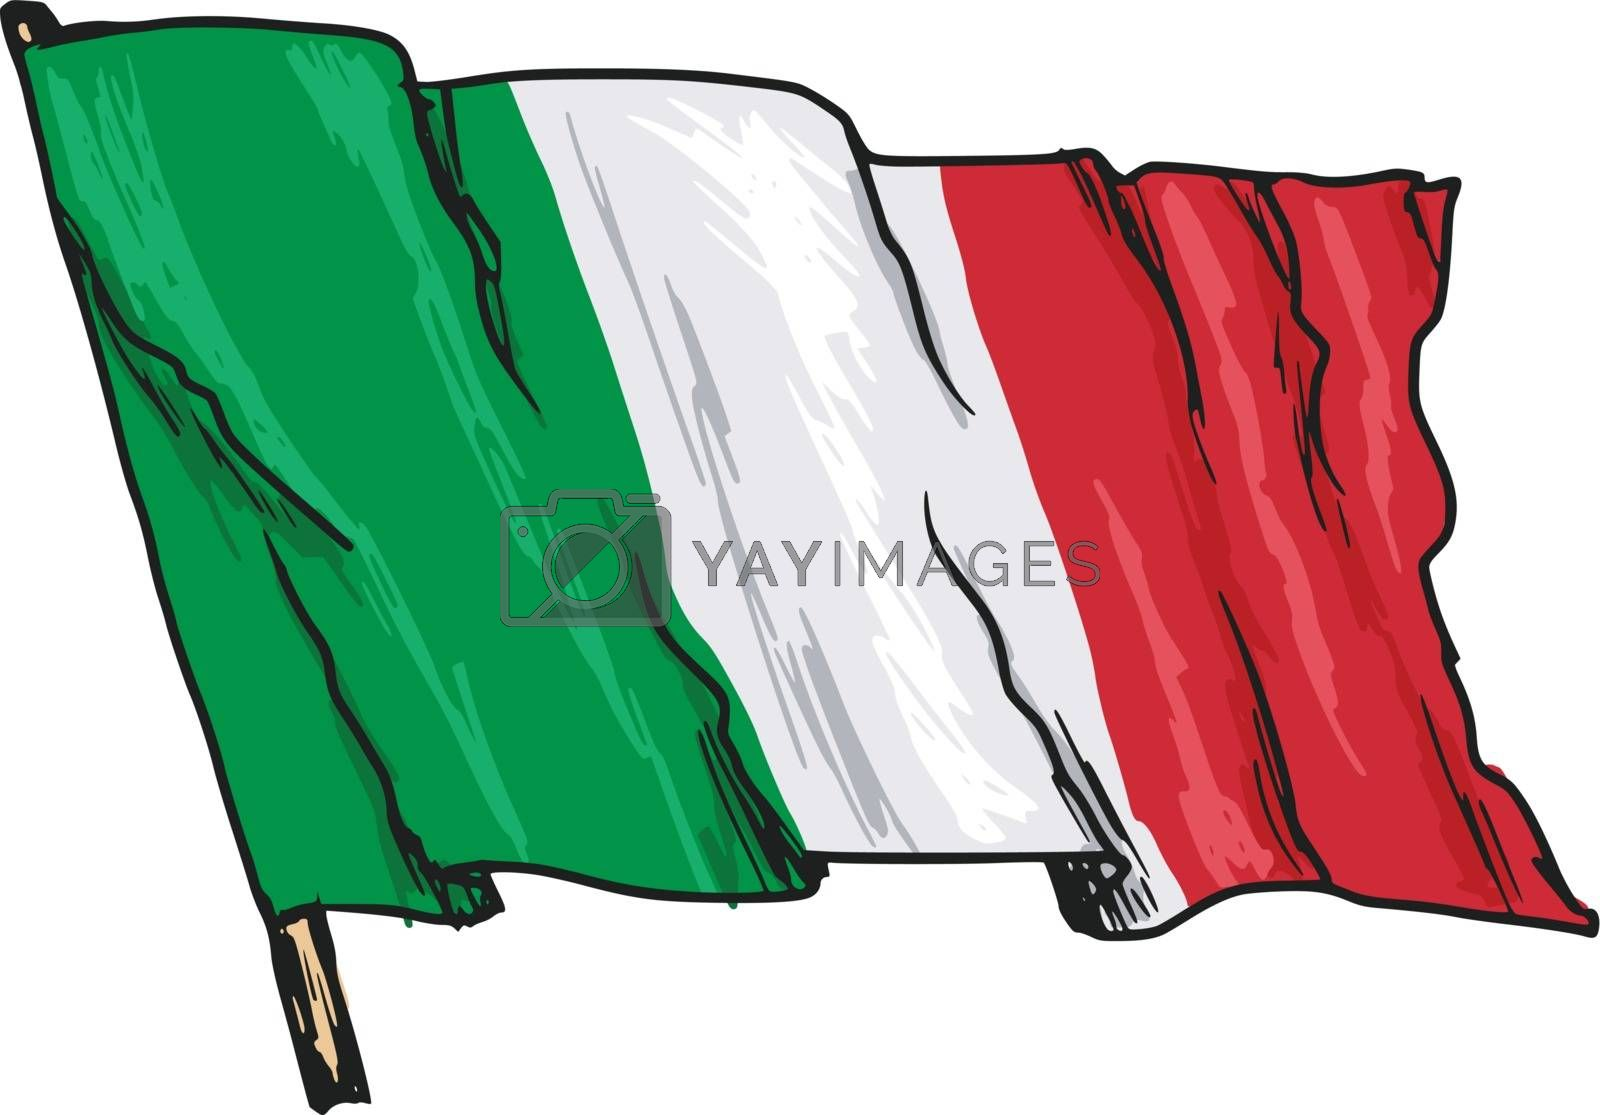 Royalty free image of flag of Italy by Perysty